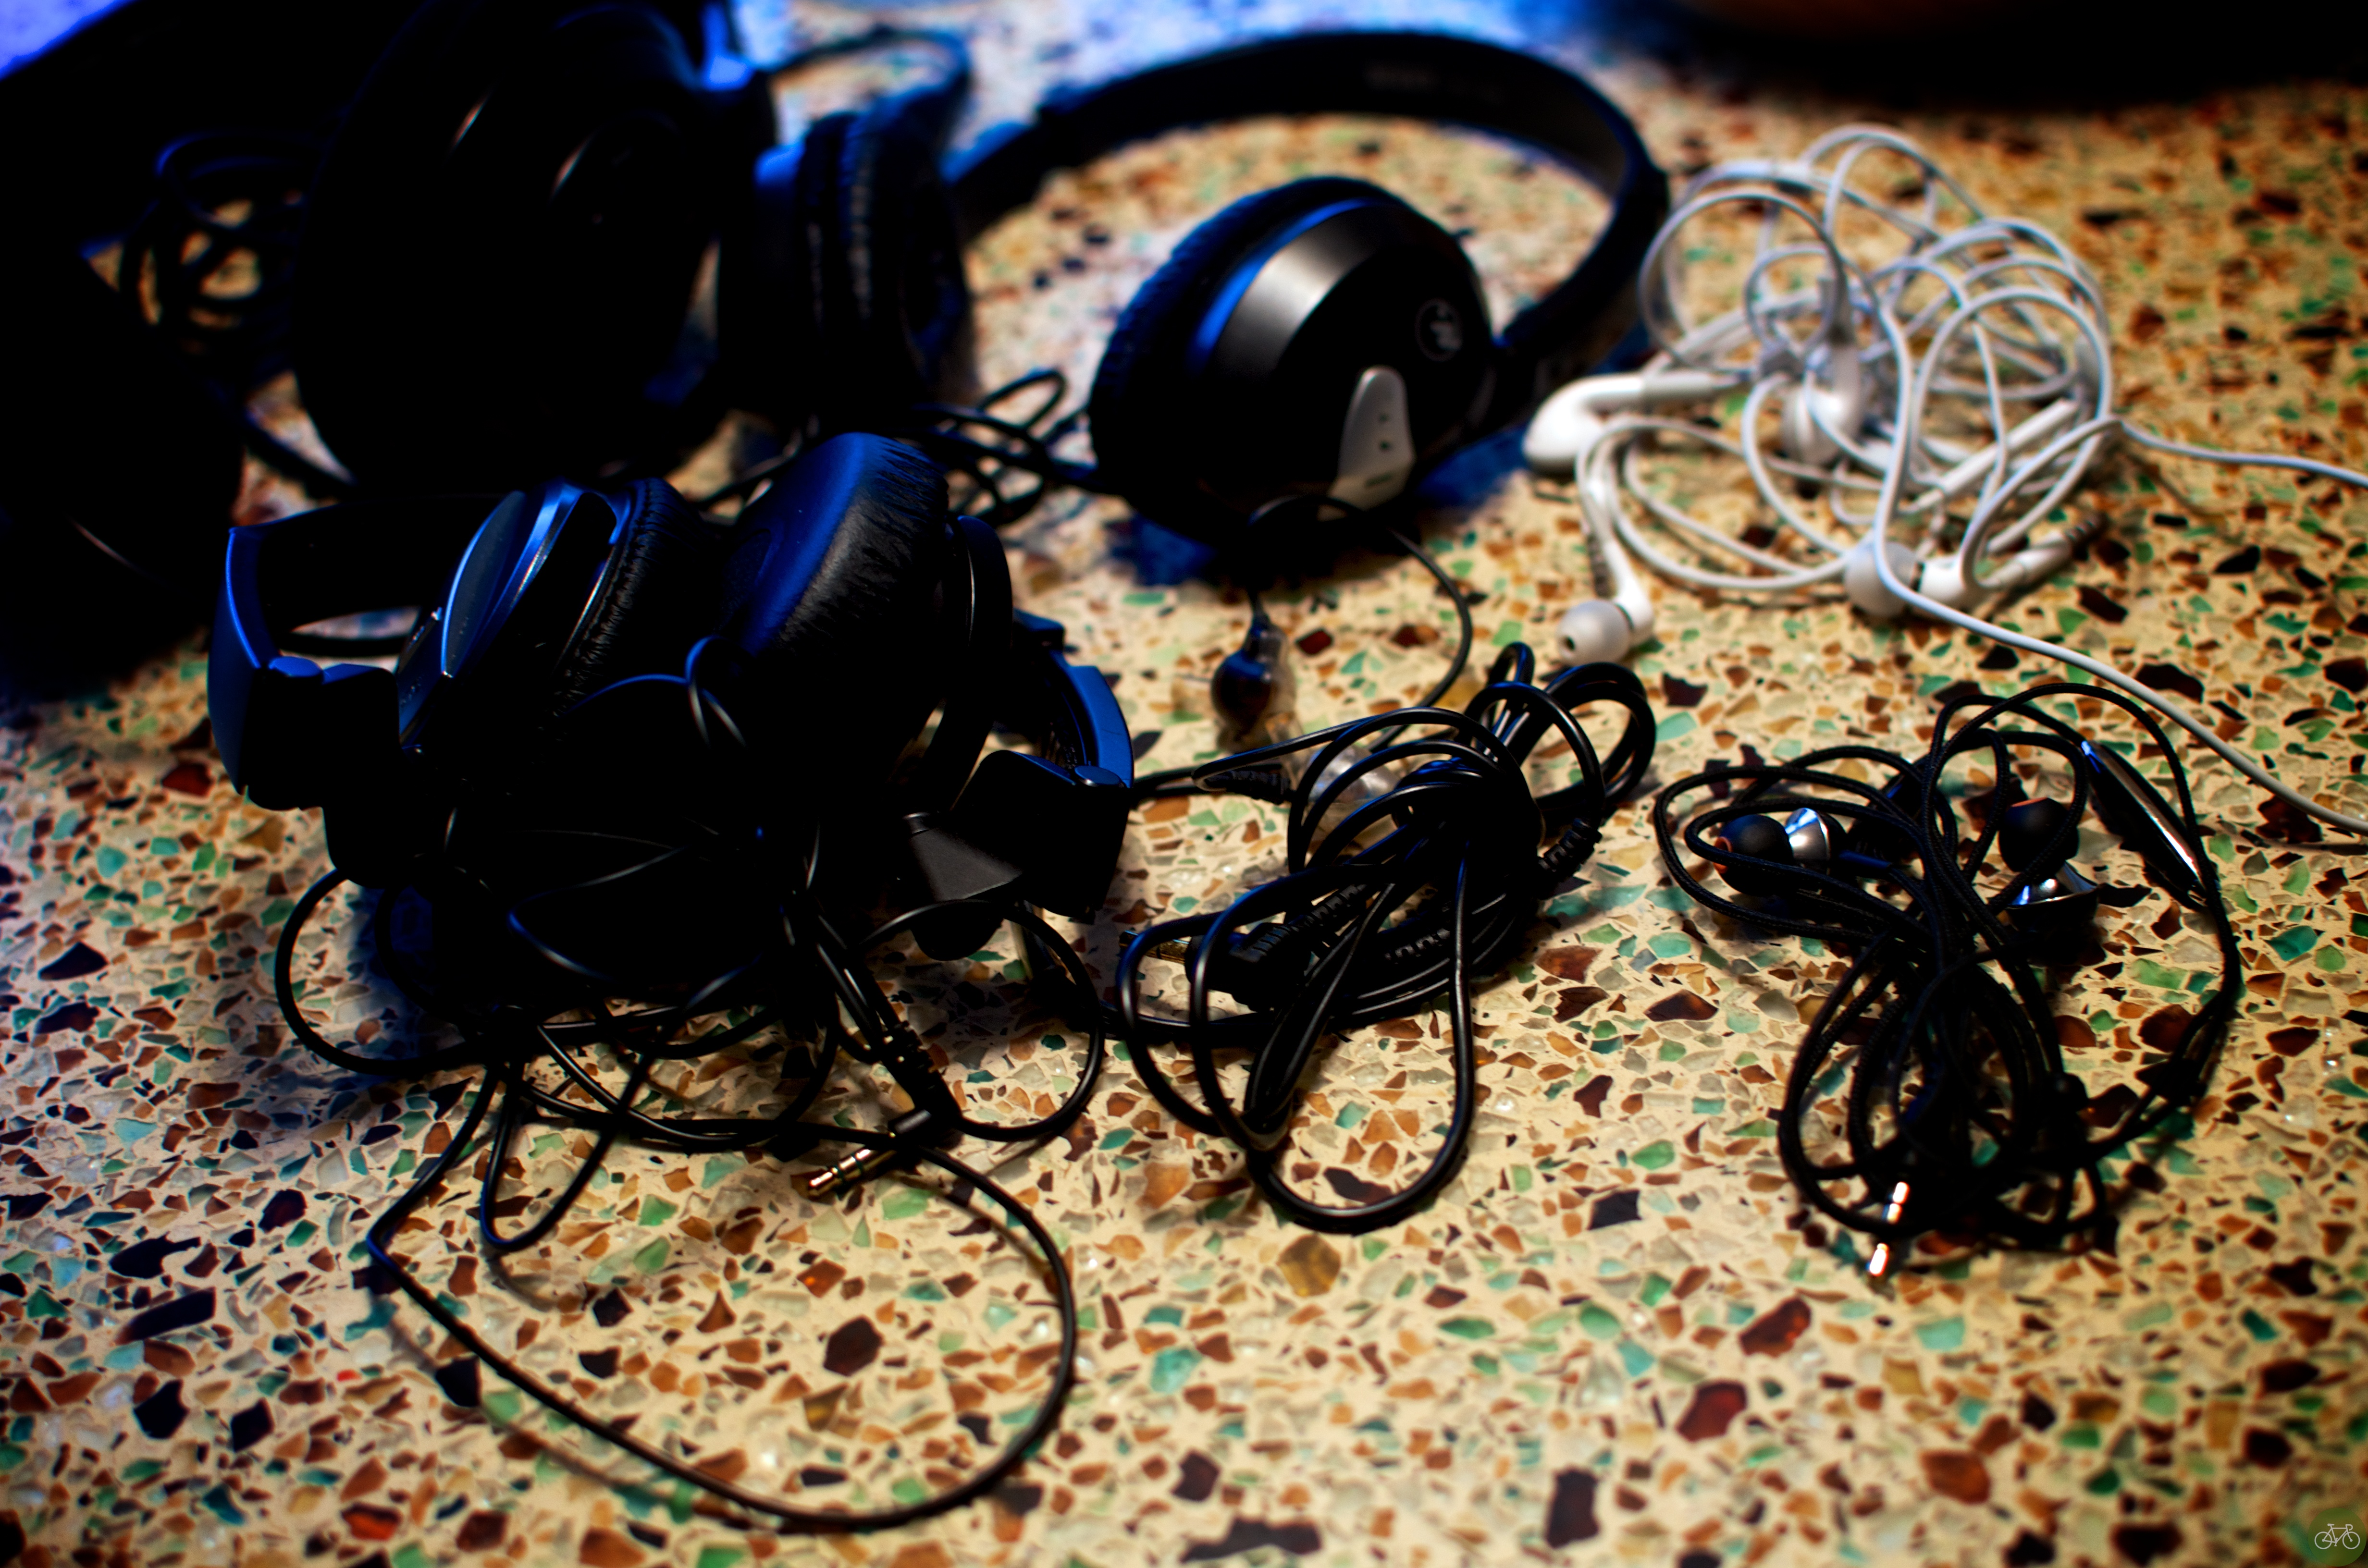 Partial collection of all the headphones I own